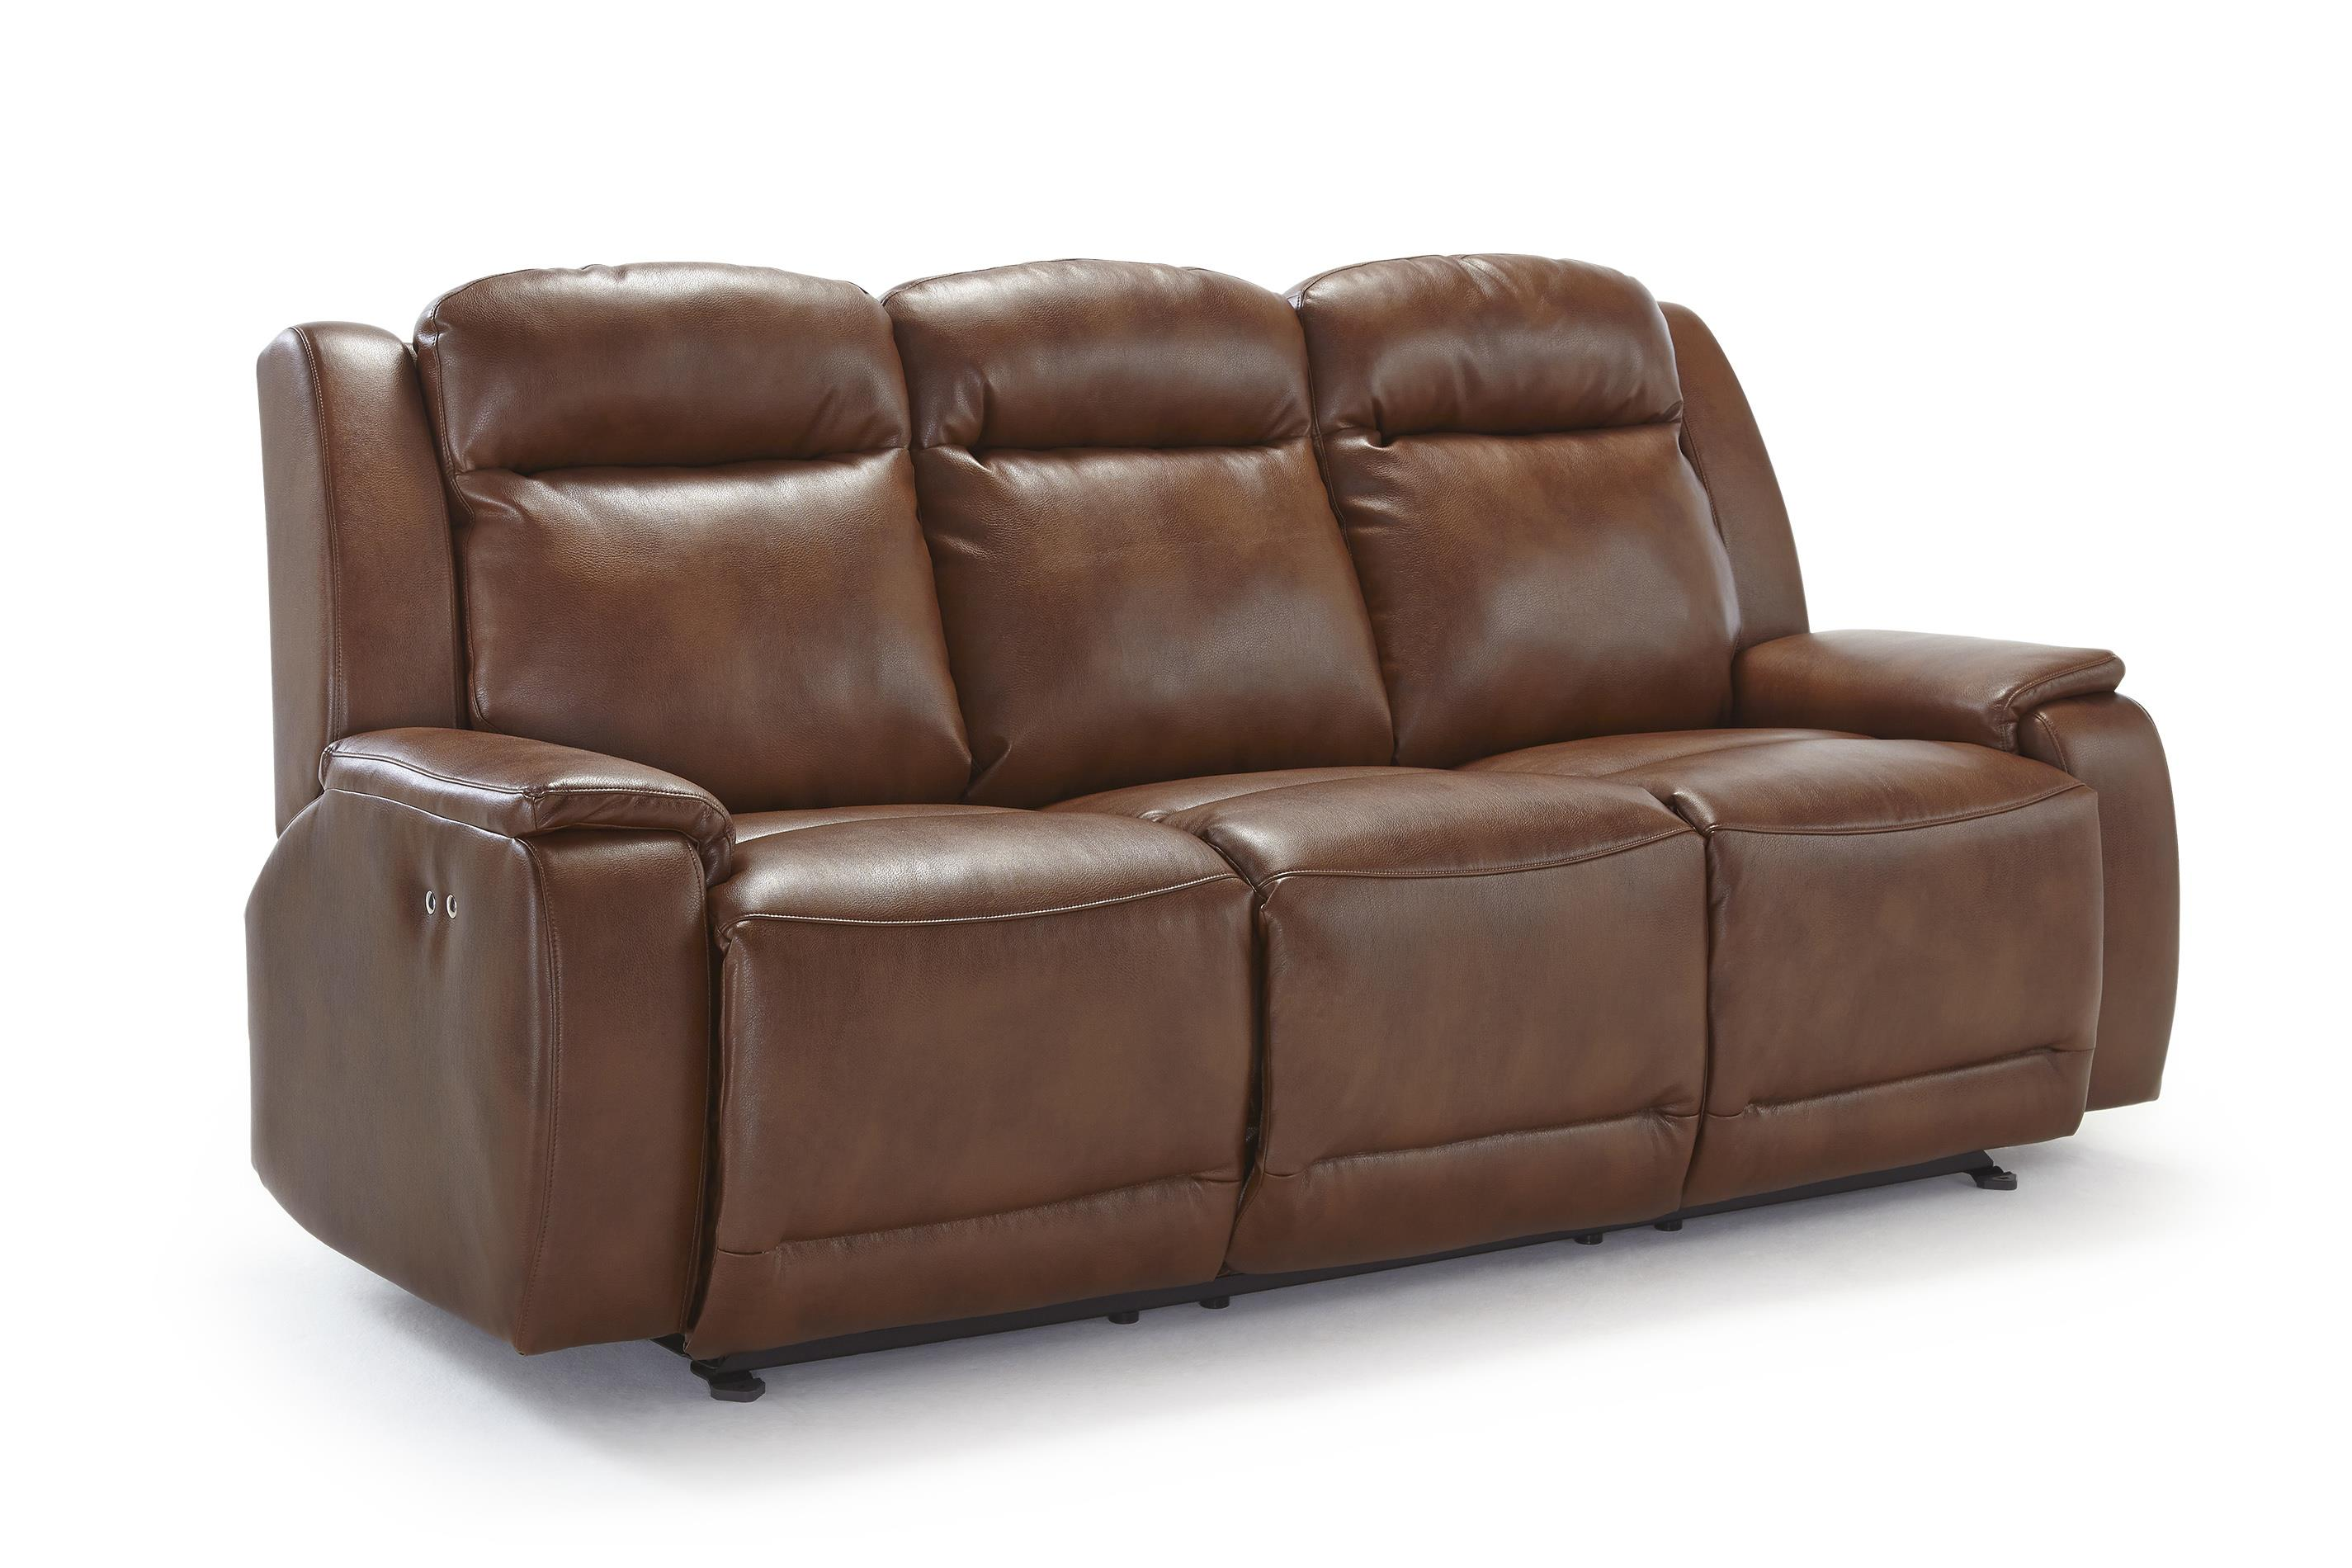 Best Home Furnishings S680 Bodie Reclining Uph - Item Number: S680CA4 76506L